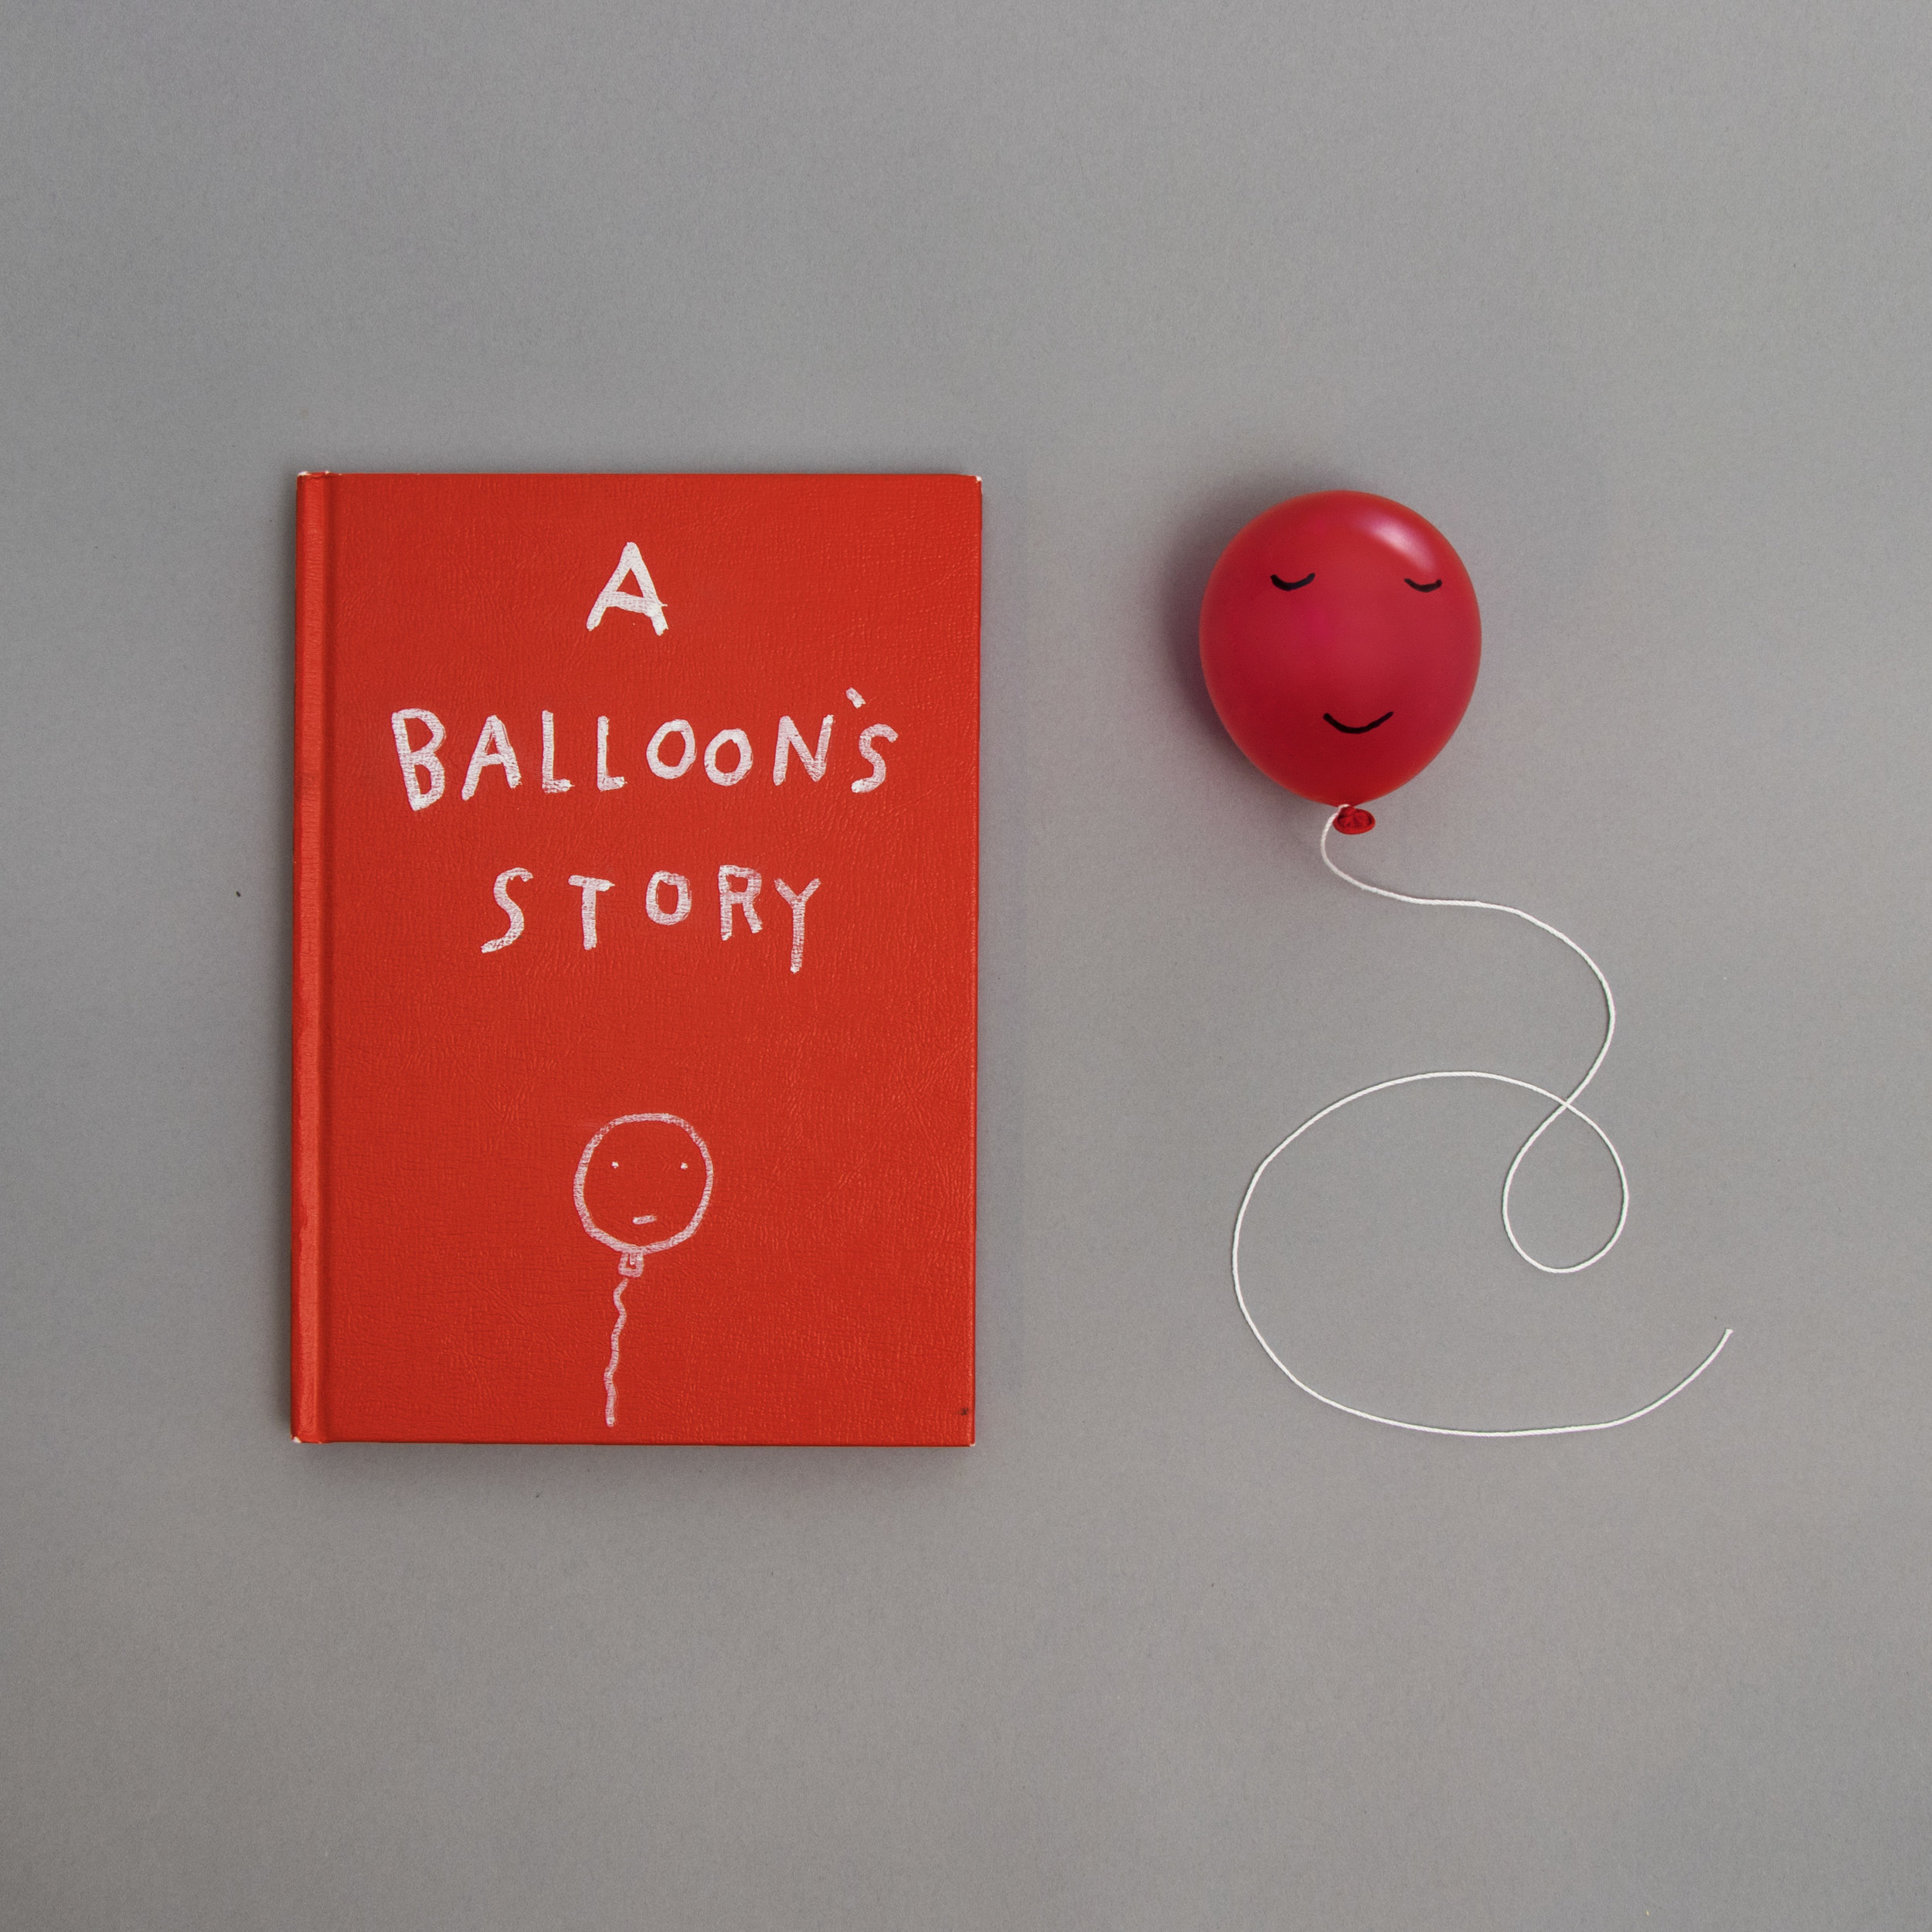 """LESSON 7:  A BALLOON'S STORY                        Normal    0                false    false    false       EN-US    JA    X-NONE                                                                                                                                                                                                                                                                                                                                                                                                                                                                                                                           /* Style Definitions */ table.MsoNormalTable {mso-style-name:""""Table Normal""""; mso-tstyle-rowband-size:0; mso-tstyle-colband-size:0; mso-style-noshow:yes; mso-style-priority:99; mso-style-parent:""""""""; mso-padding-alt:0in 5.4pt 0in 5.4pt; mso-para-margin:0in; mso-para-margin-bottom:.0001pt; mso-pagination:widow-orphan; font-size:12.0pt; font-family:Cambria; mso-ascii-font-family:Cambria; mso-ascii-theme-font:minor-latin; mso-hansi-font-family:Cambria; mso-hansi-theme-font:minor-latin;}       Everyone has fears about the future. Even the happiest people sometimes worry about tomorrow. A bright red balloon shows how fears can be faced and today embraced."""